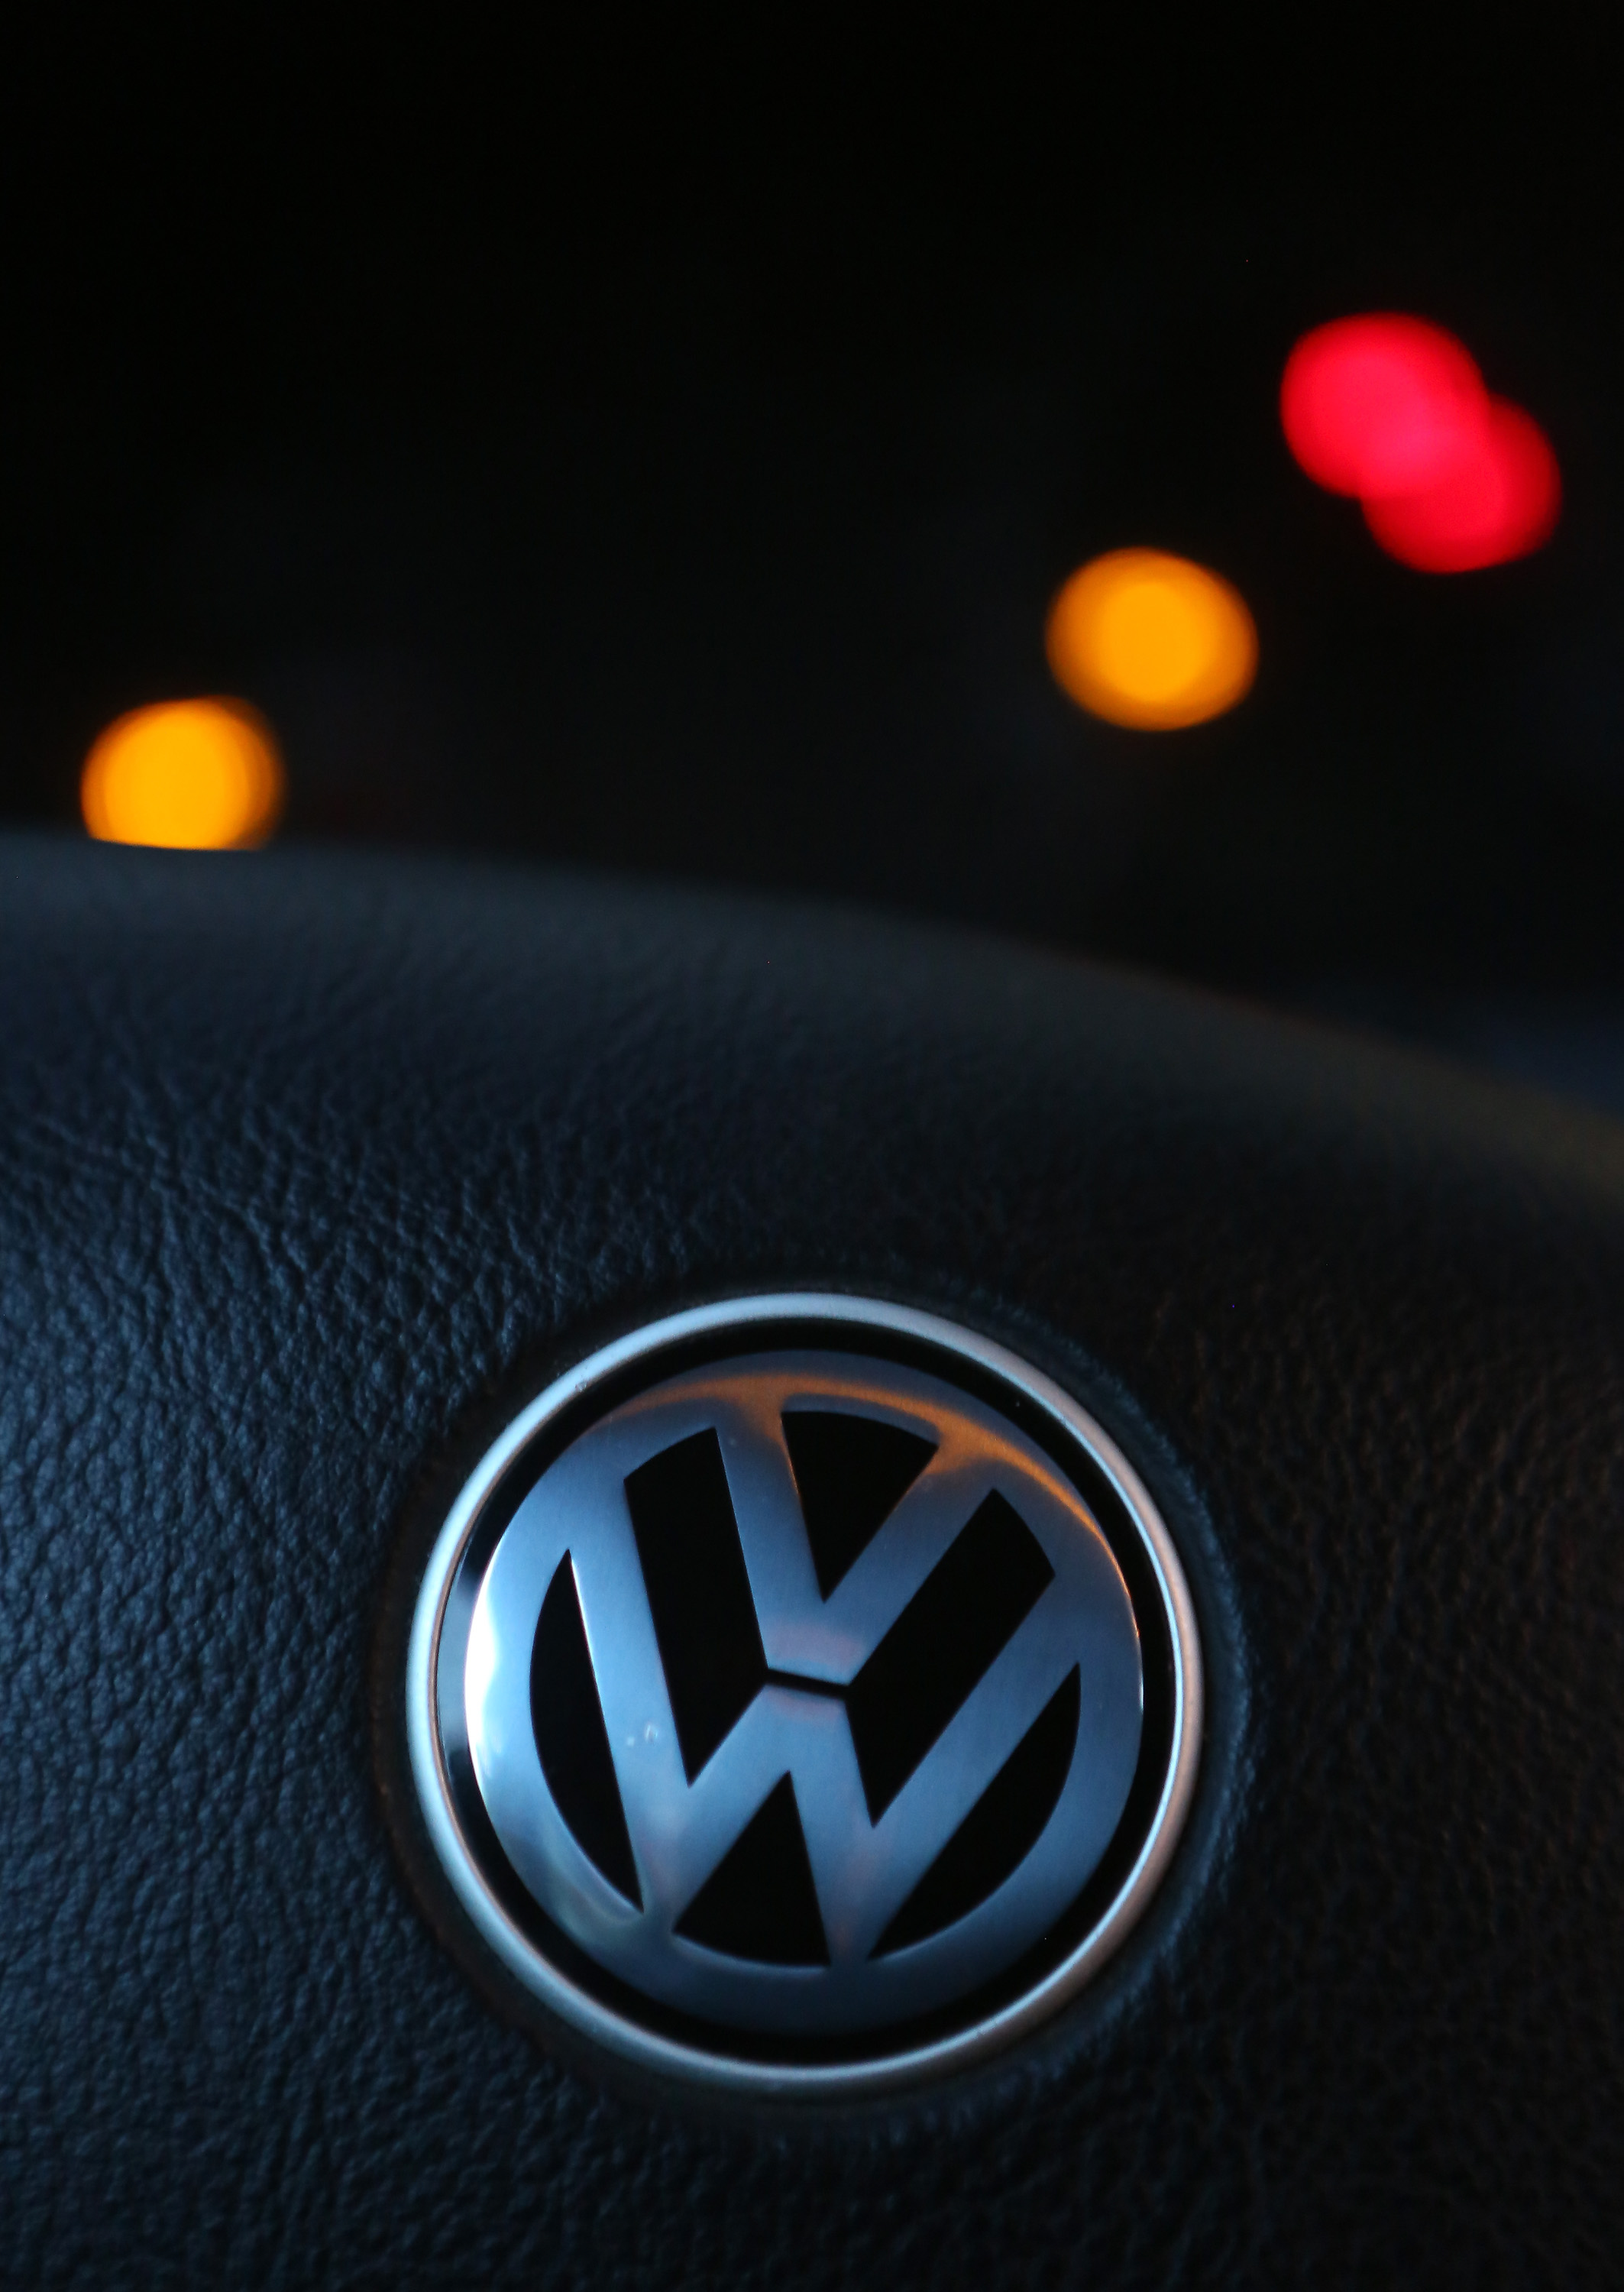 A Volkswagen (VW) logo is seen on the steering wheel of one of the Volkswagen cars in Berlin on Sept. 18, 2015.